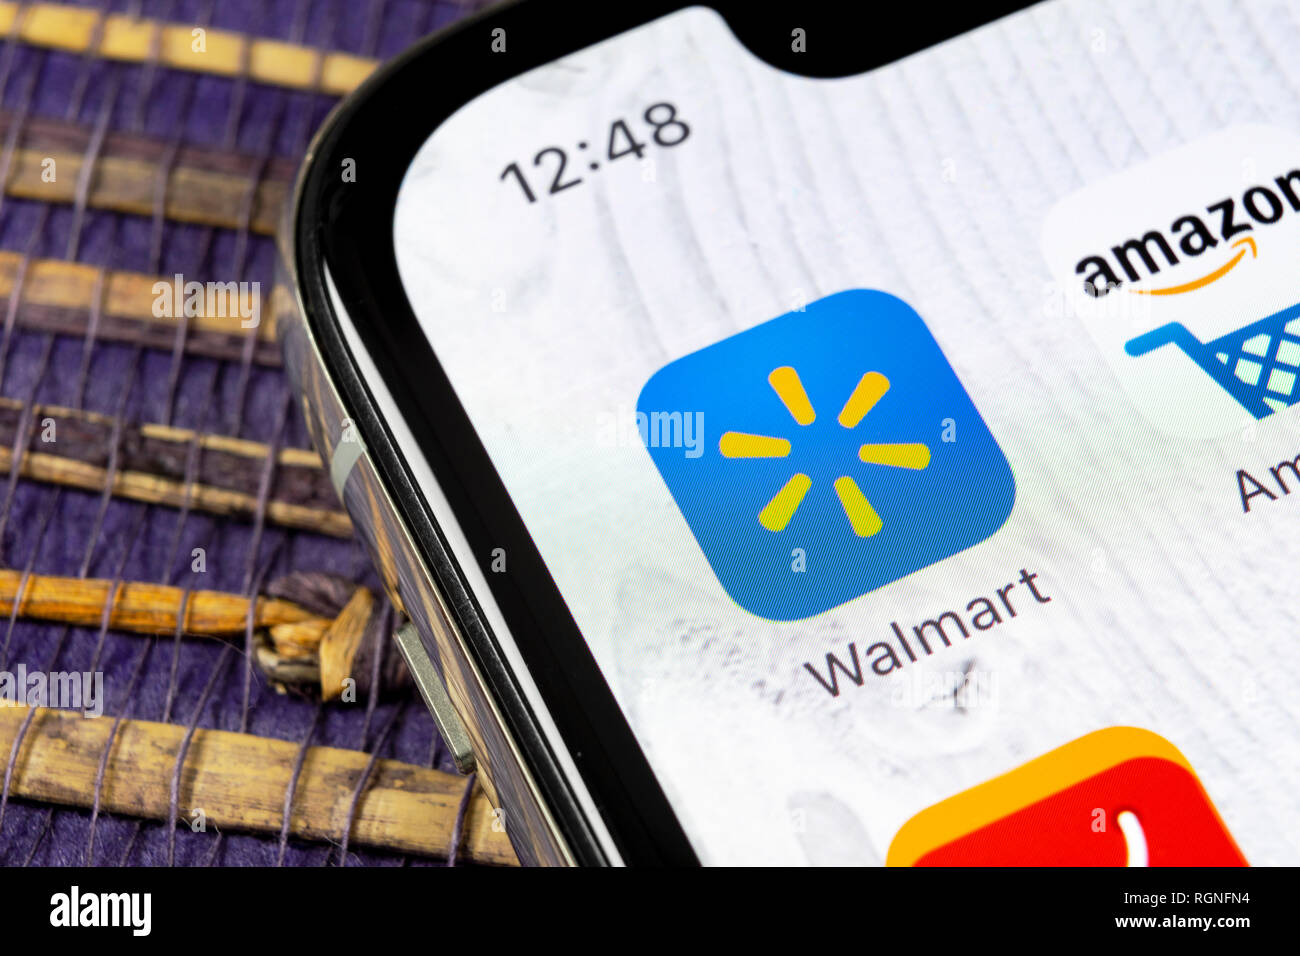 walmart application for iphone